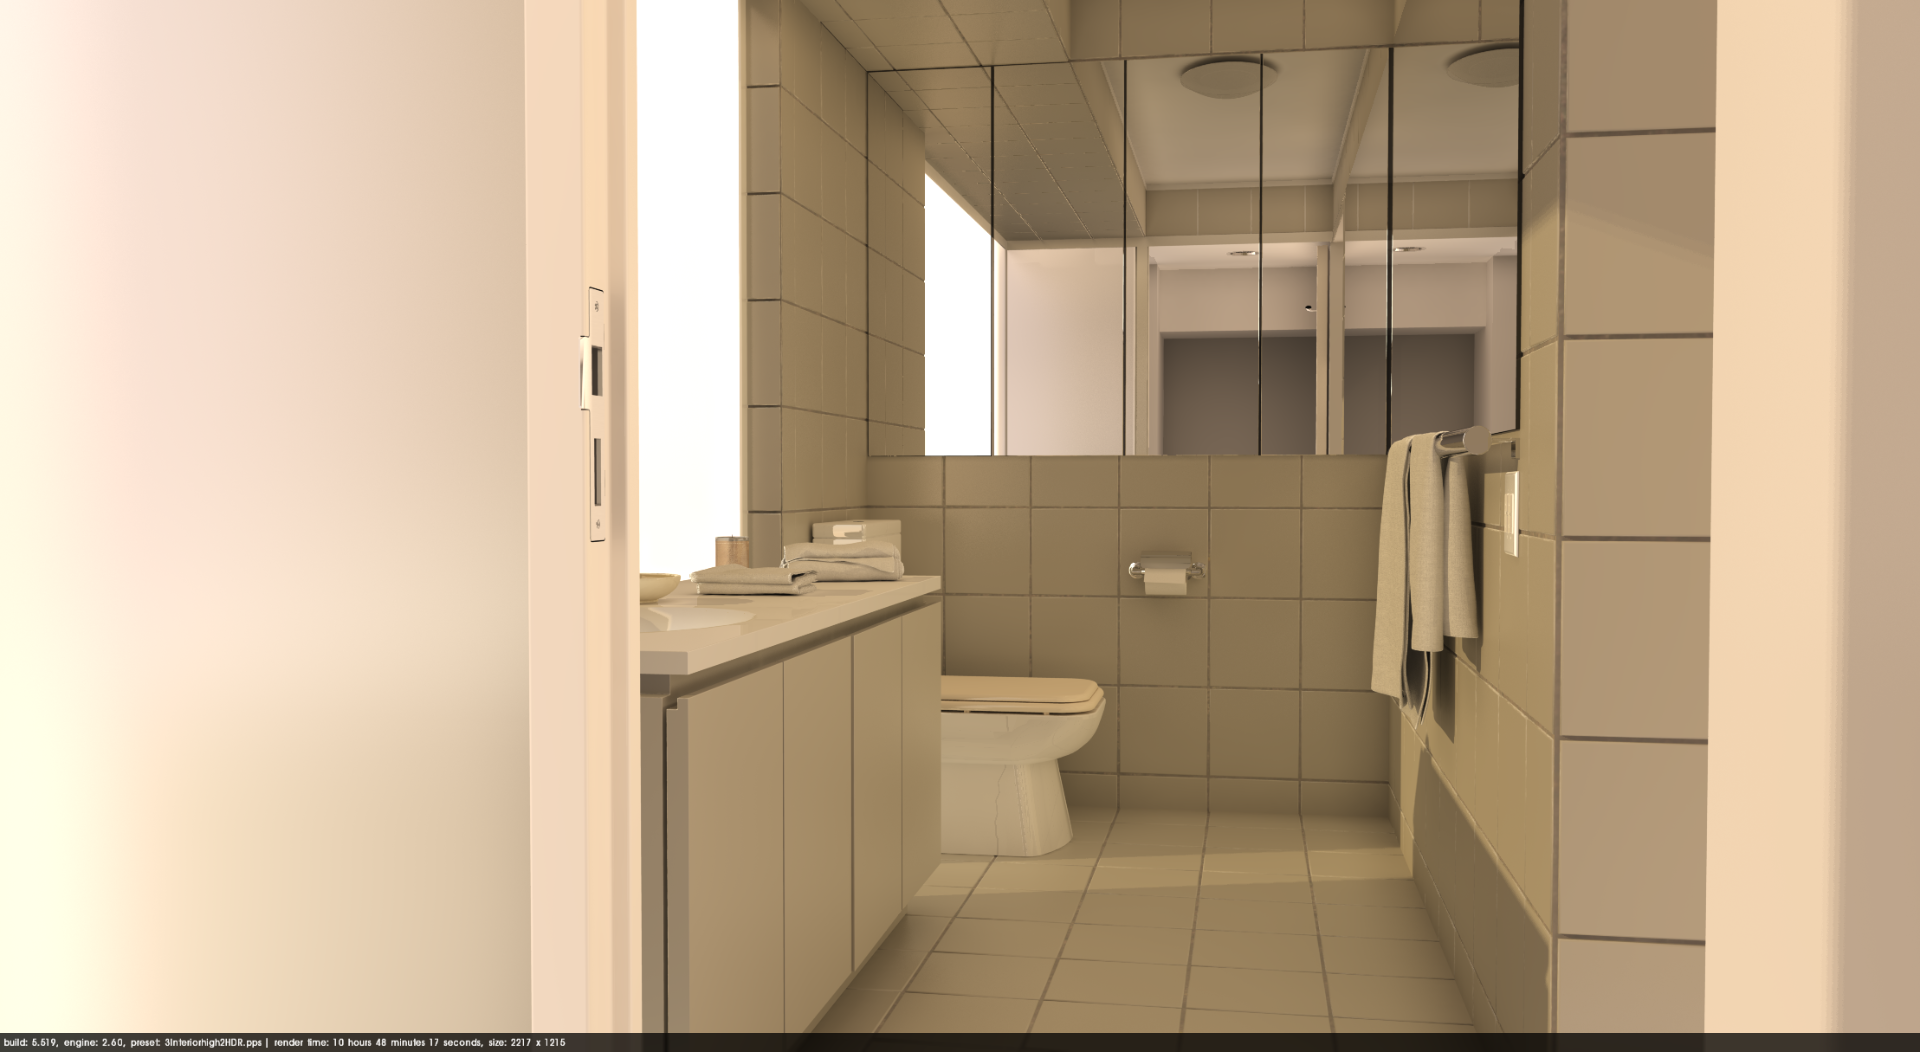 bathroom1_0803_day2 2017-08-03 17474300000.png